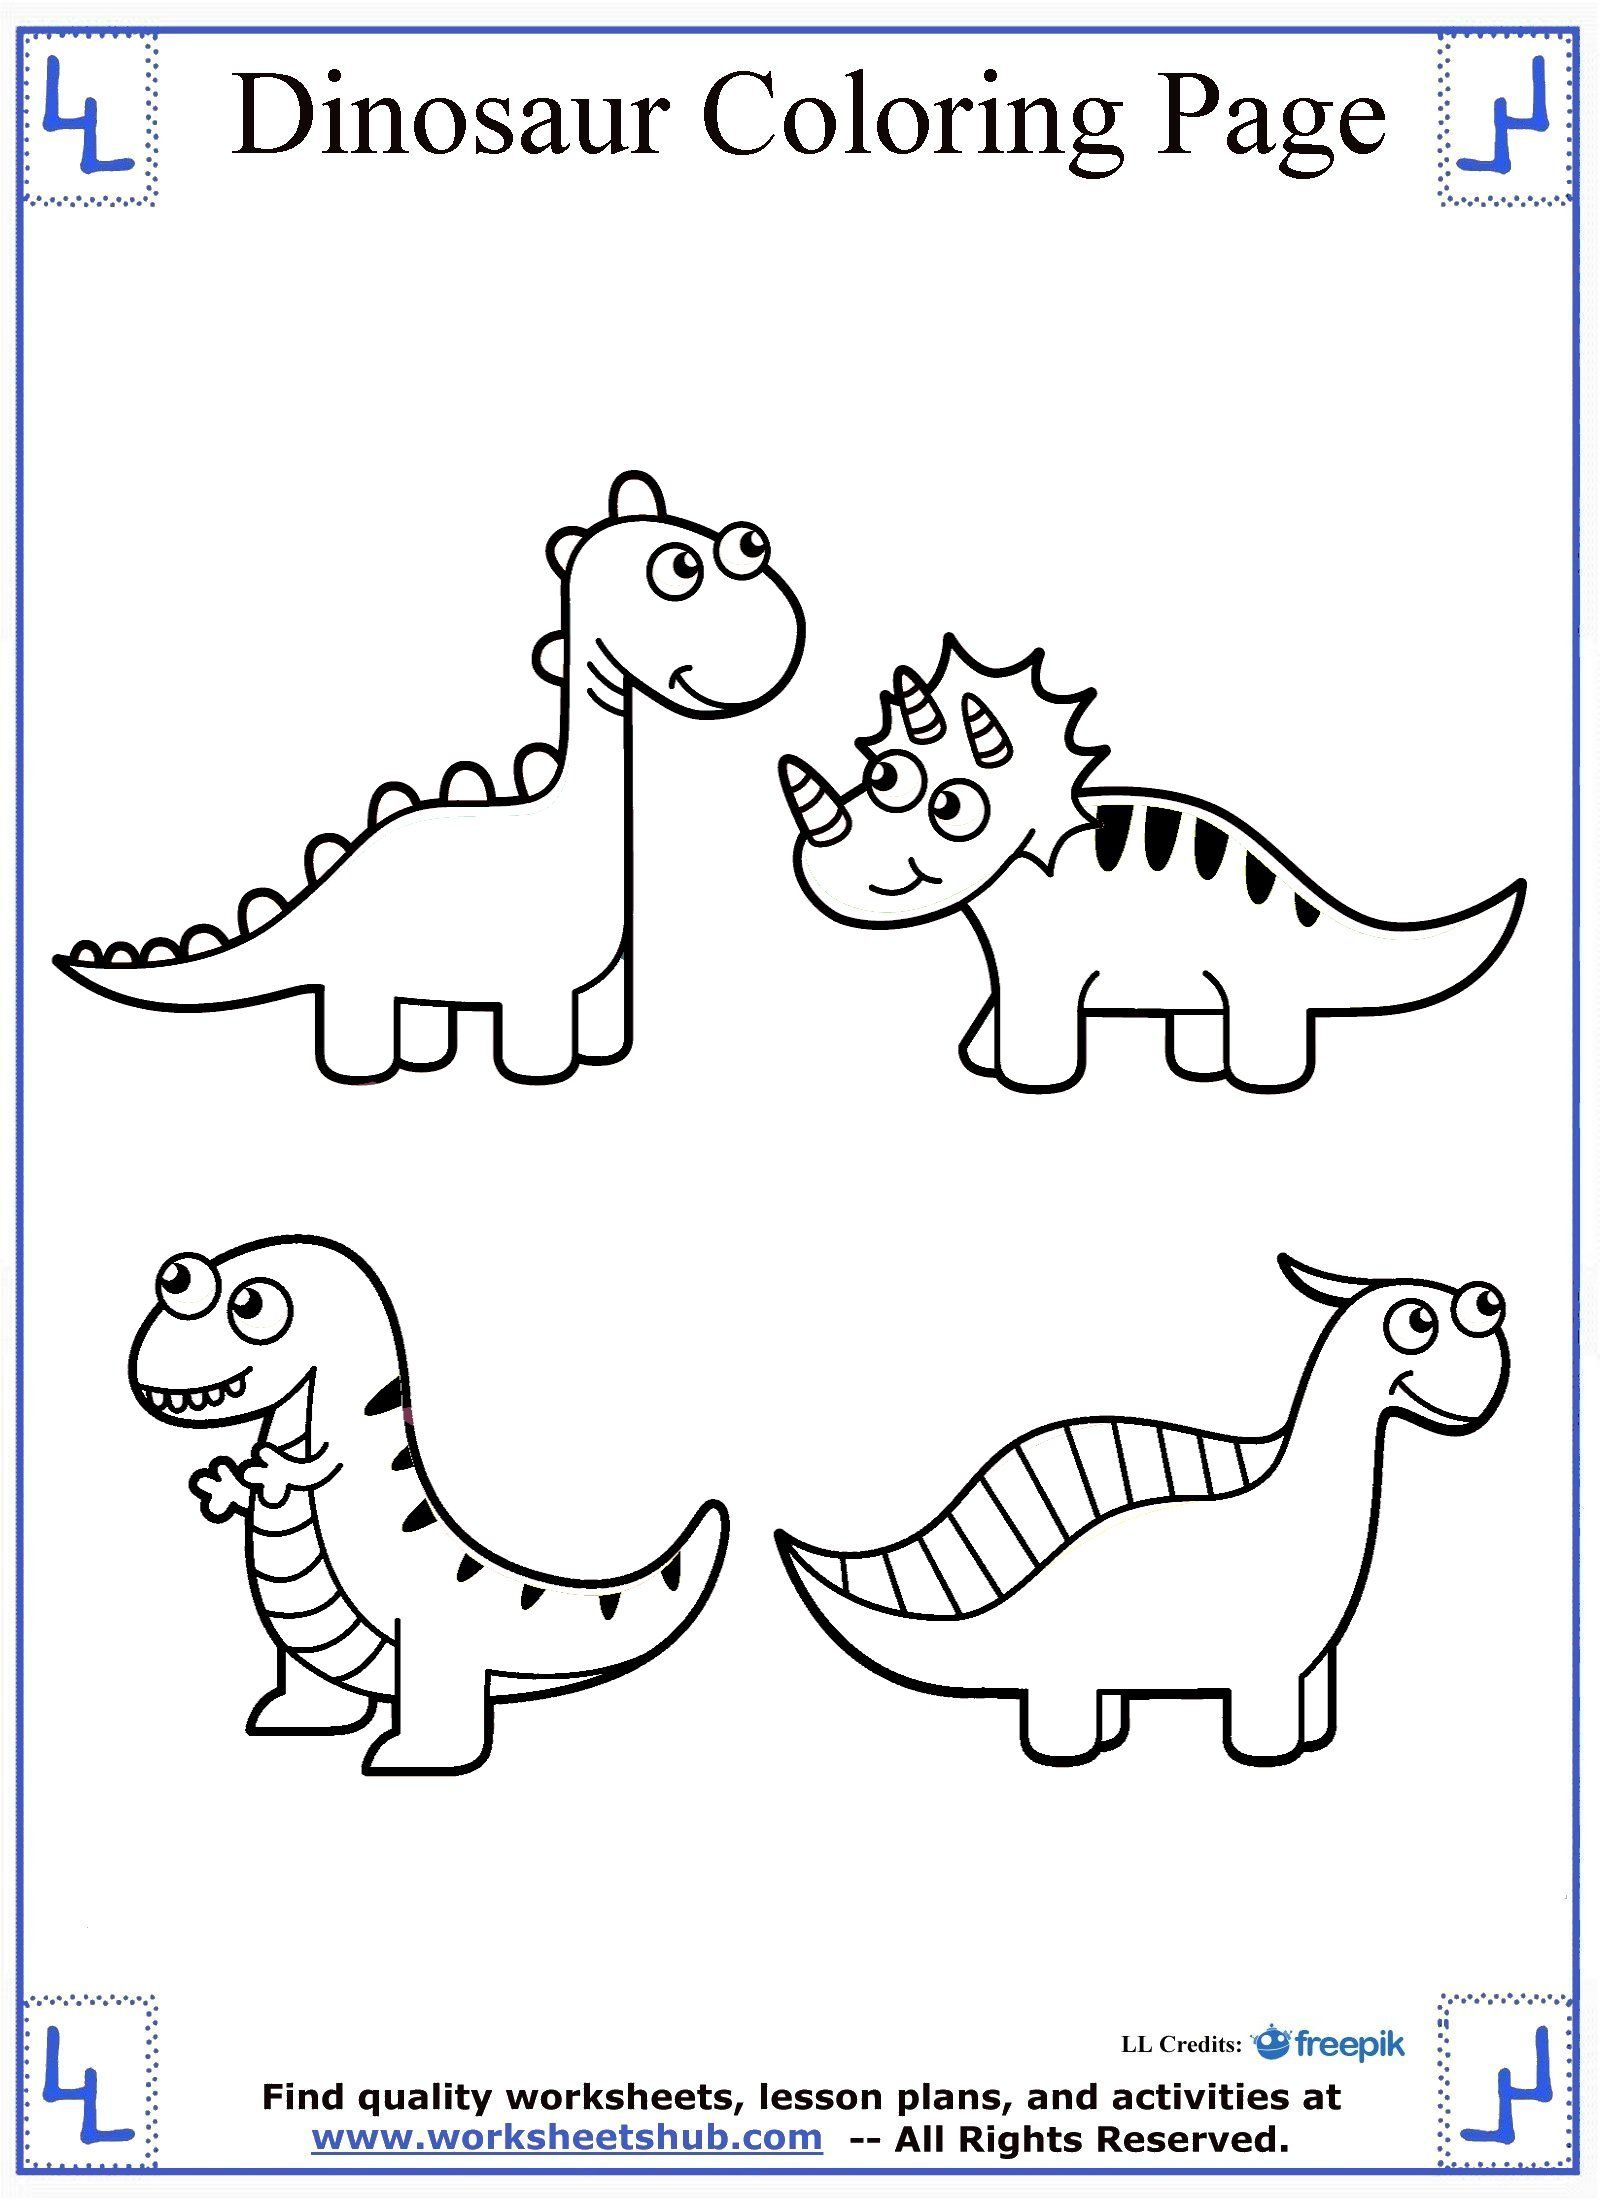 Dinosaur Coloring Page Cute | Dinosaur Coloring Pages | Pinterest ...